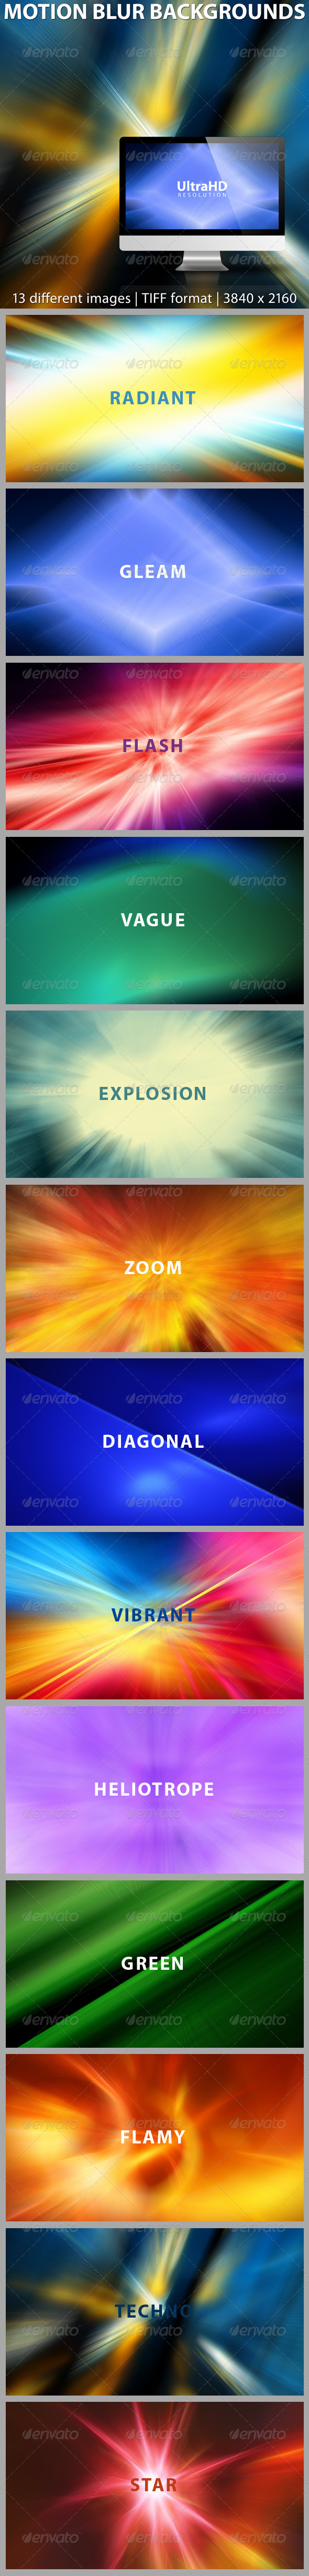 GraphicRiver Abstract Motion Blur Backgrounds 8005529